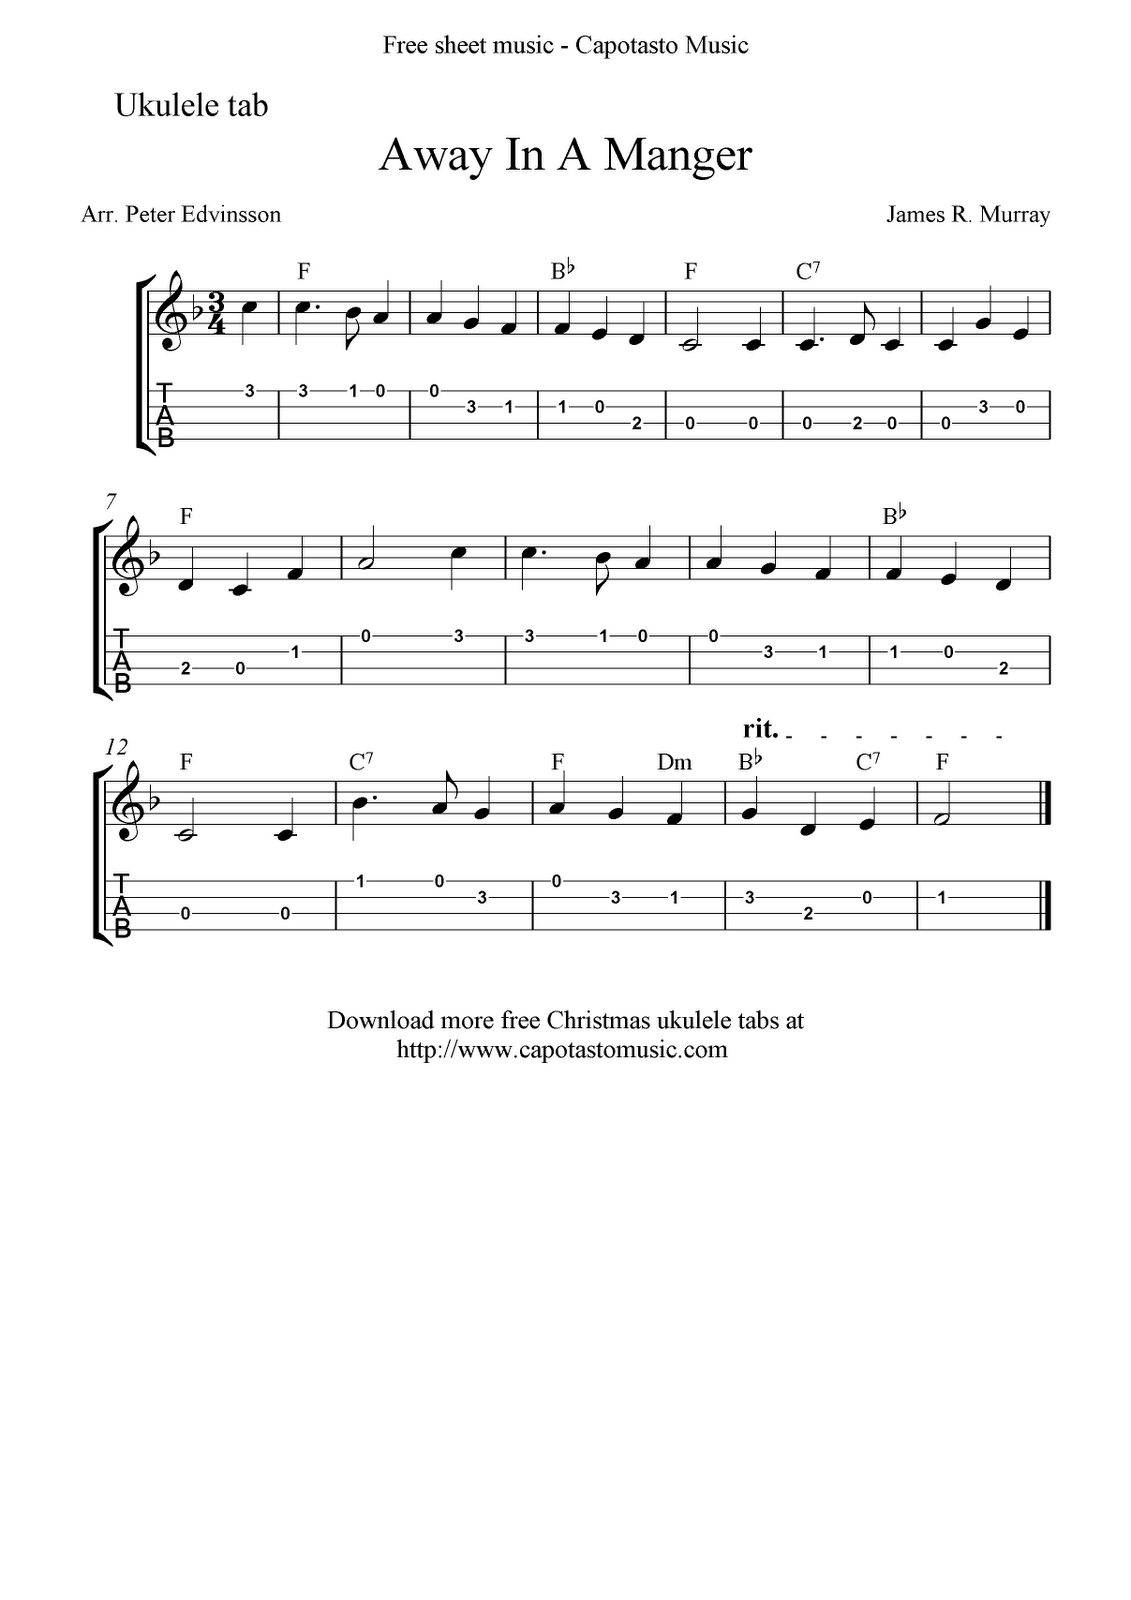 Away In A Manger Ukulele Sheet Music Free Printable Ukulele